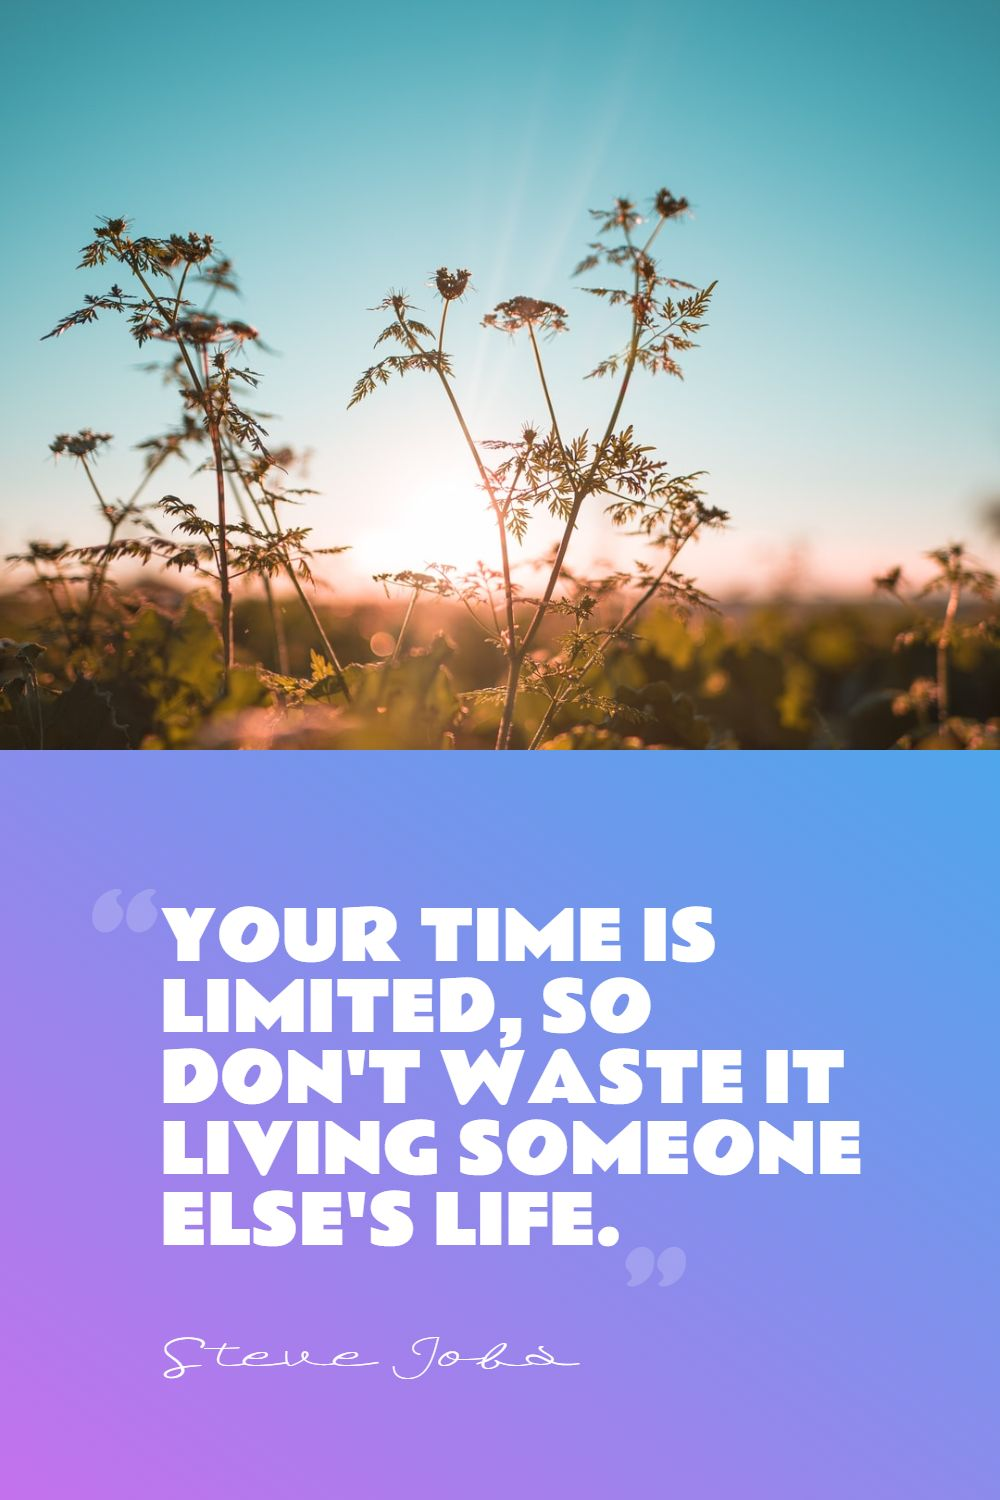 Quotes image of Your time is limited, so don't waste it living someone else's life.